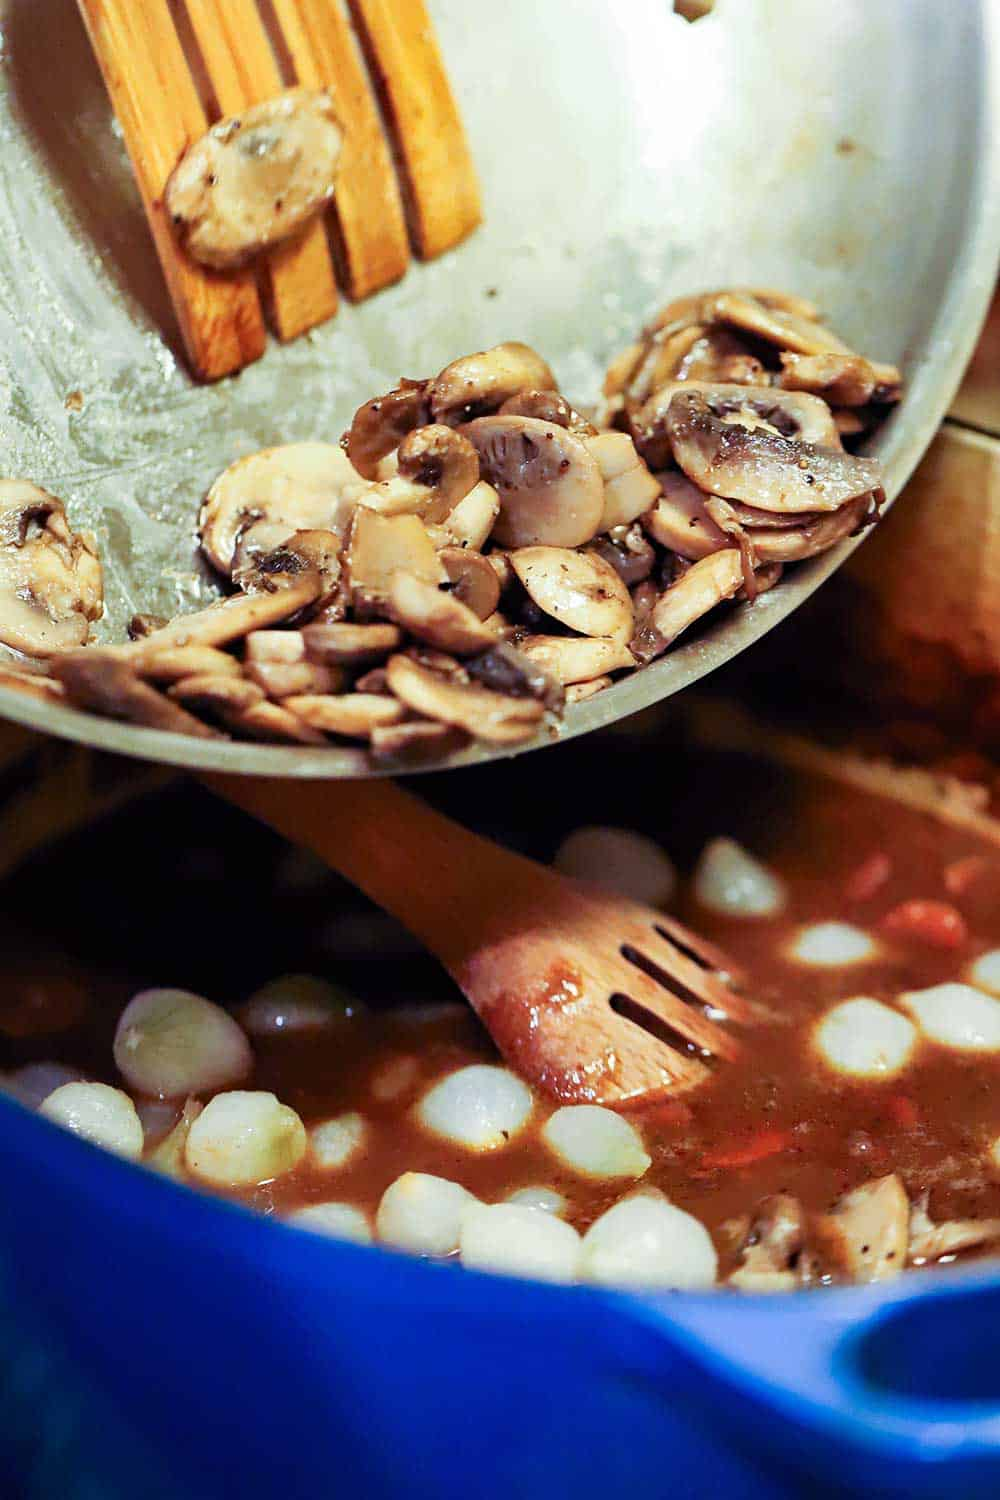 Sautéd mushrooms being transferred into a pot of simmering beef bourguignon.